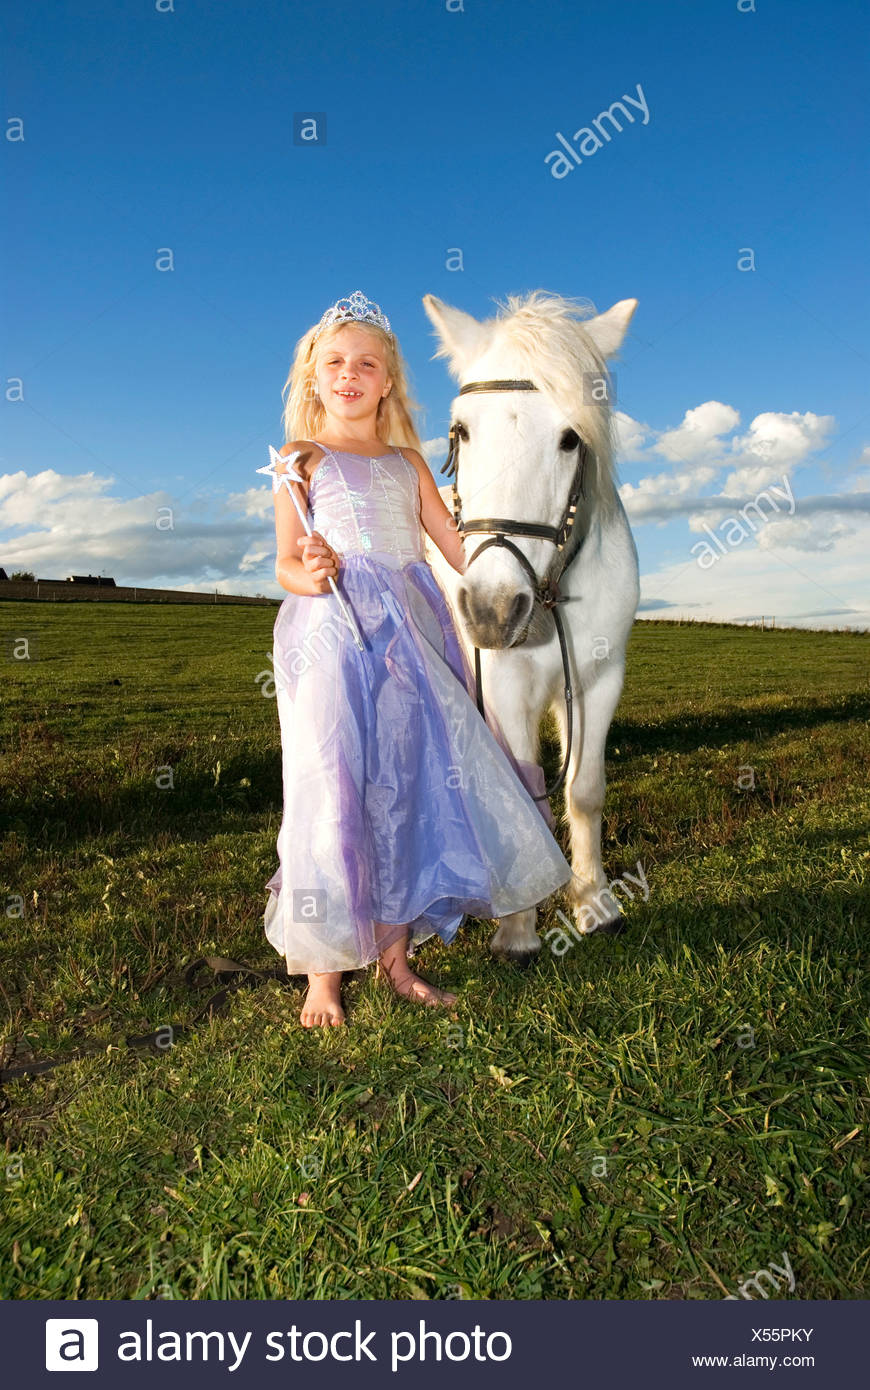 Girl (7-9) dressed as fairy by pony - Stock Image